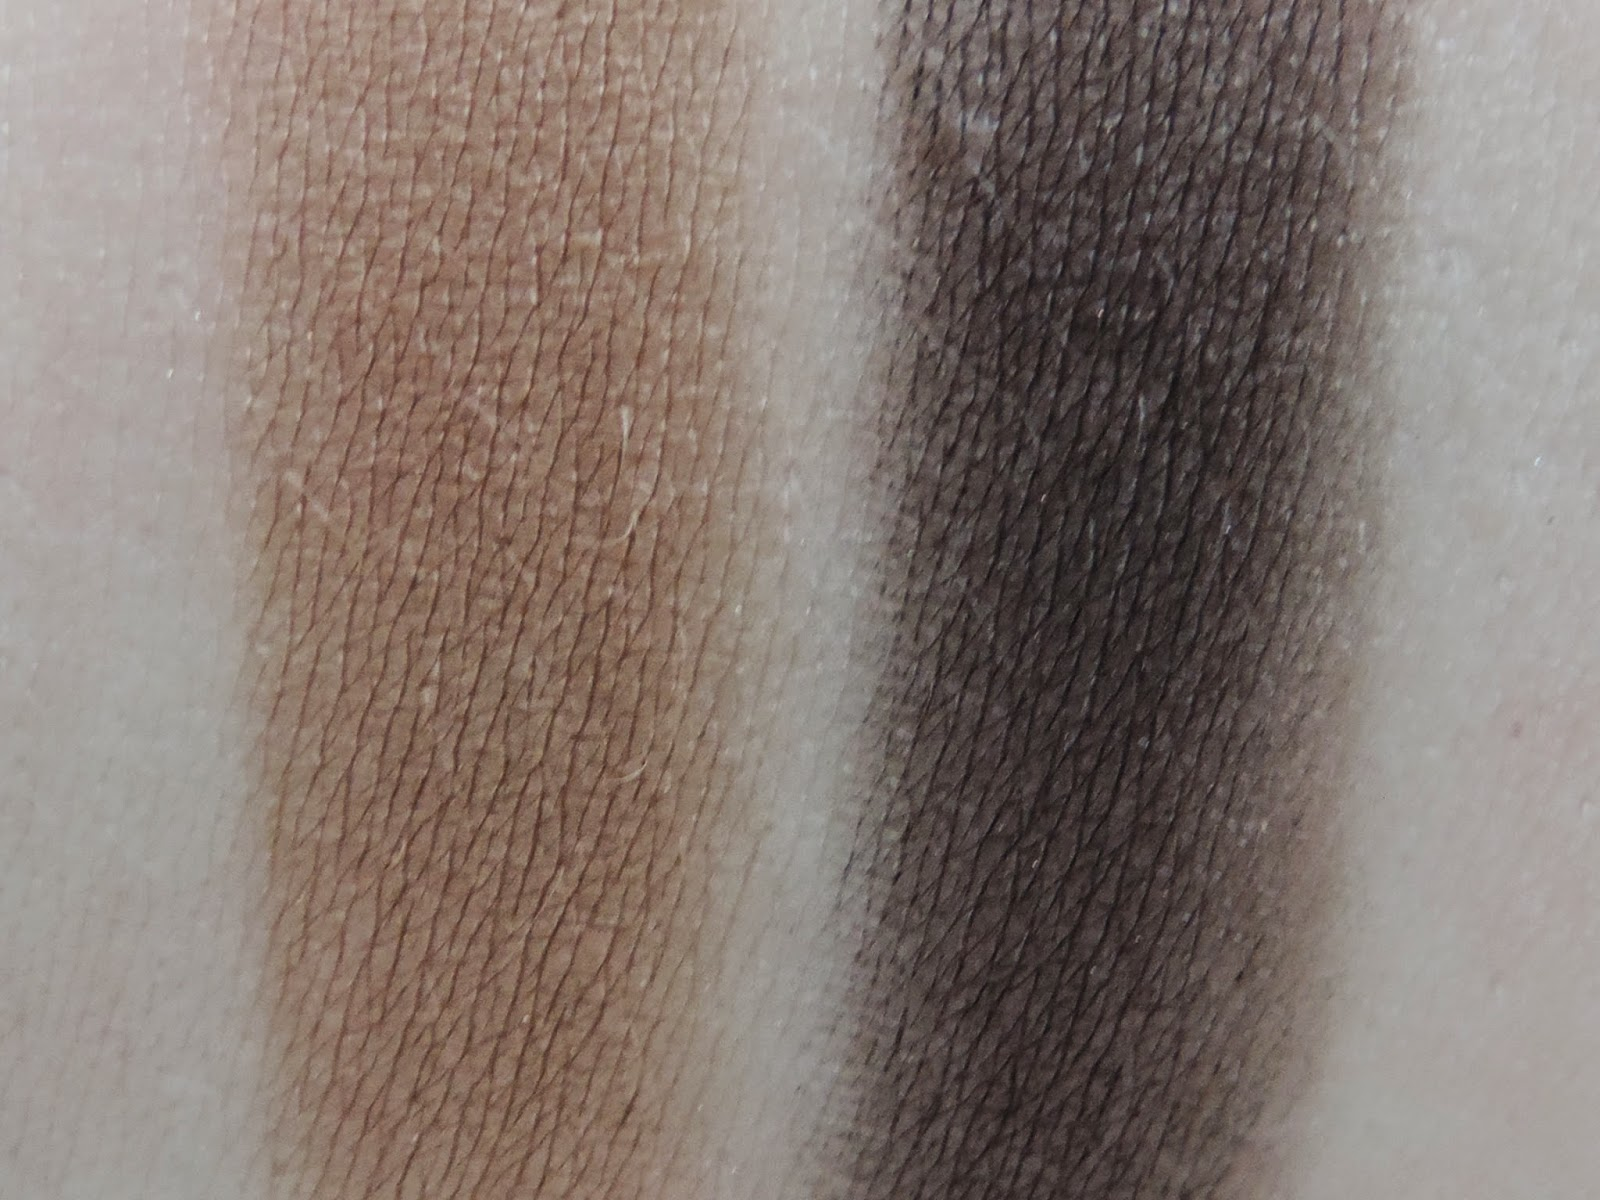 Swatches (From Left): Shade 5, Shade 4